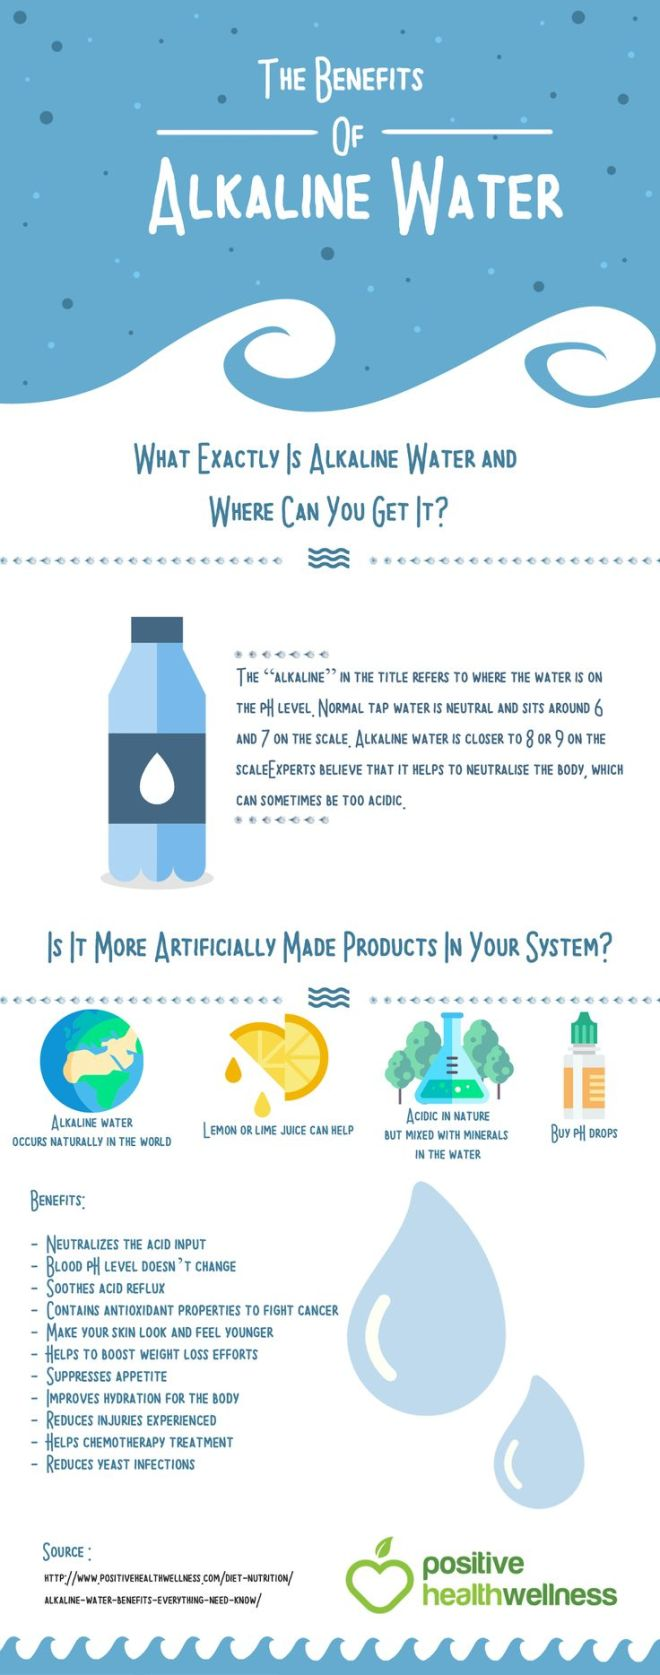 Alkaline water certainly does have numerous health